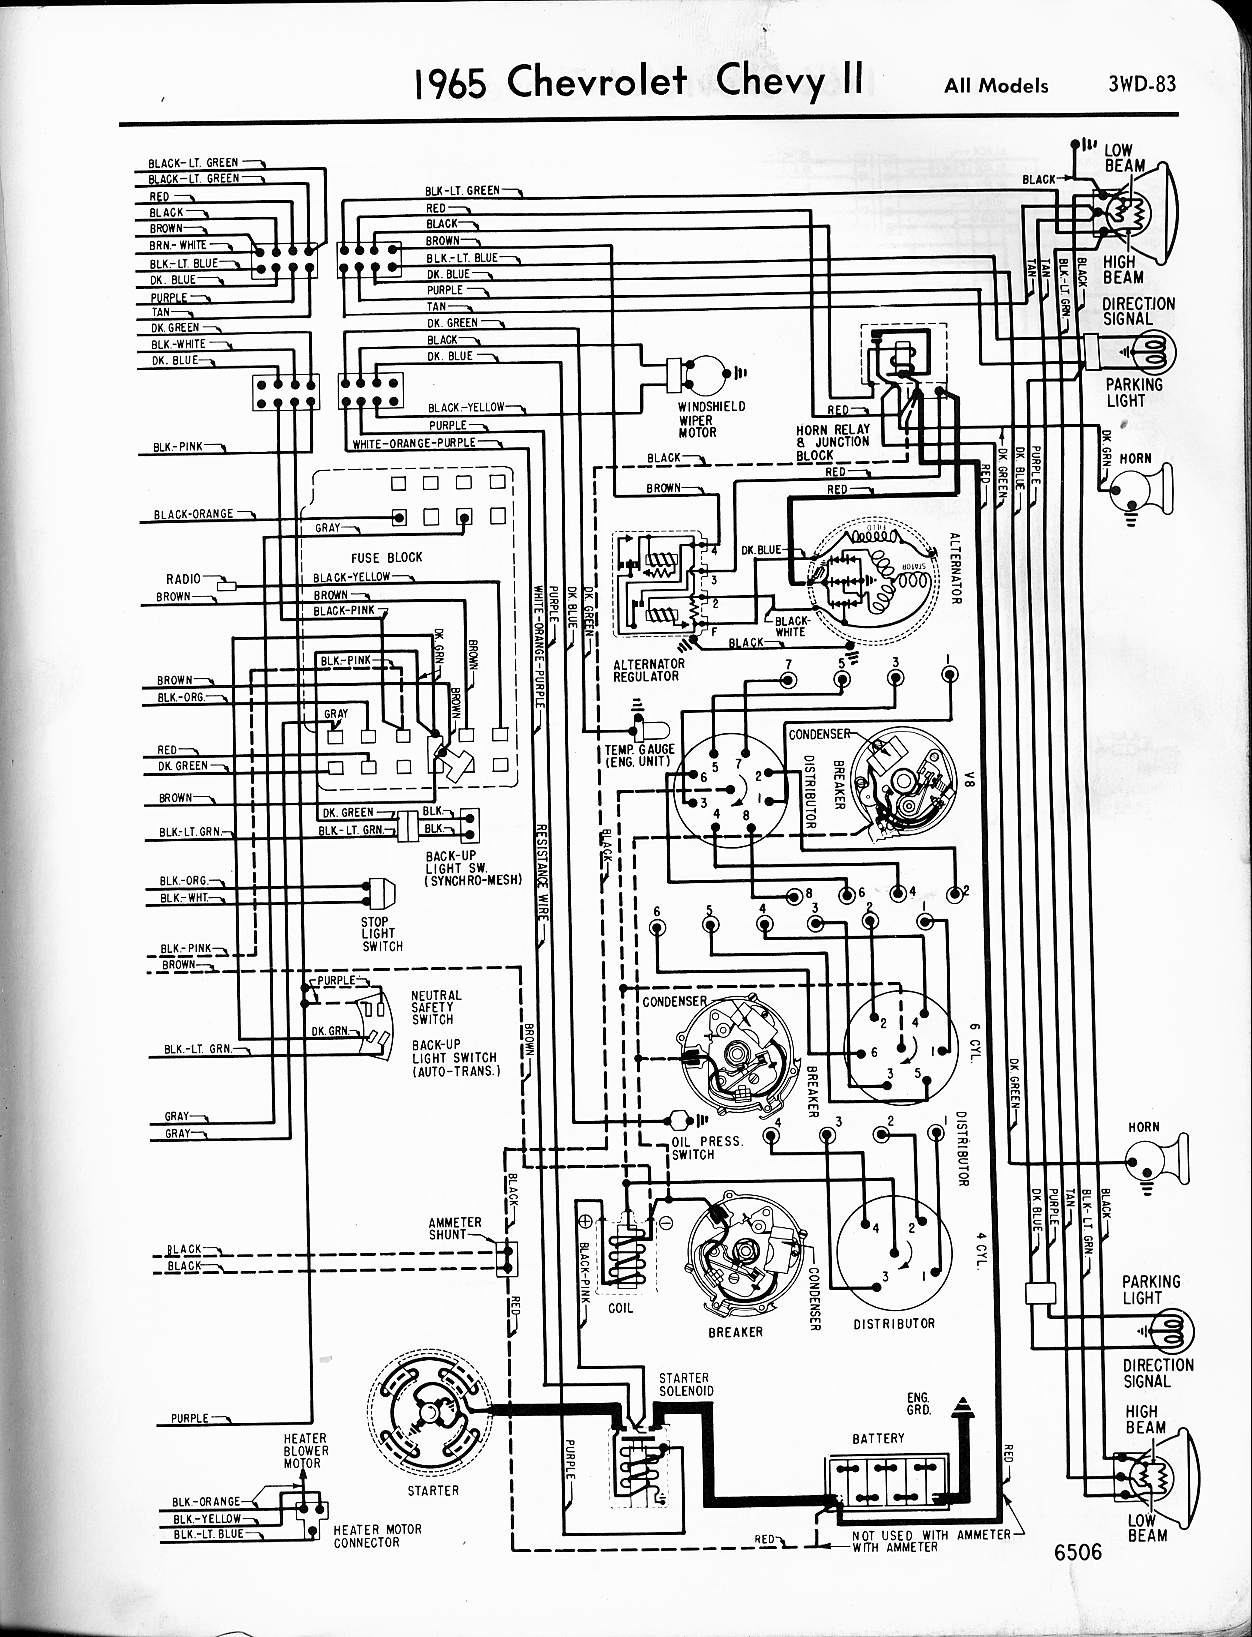 1964 Chrysler Newport Wiring Diagram Libraries 1966 1977 Cordoba Todays76 Library